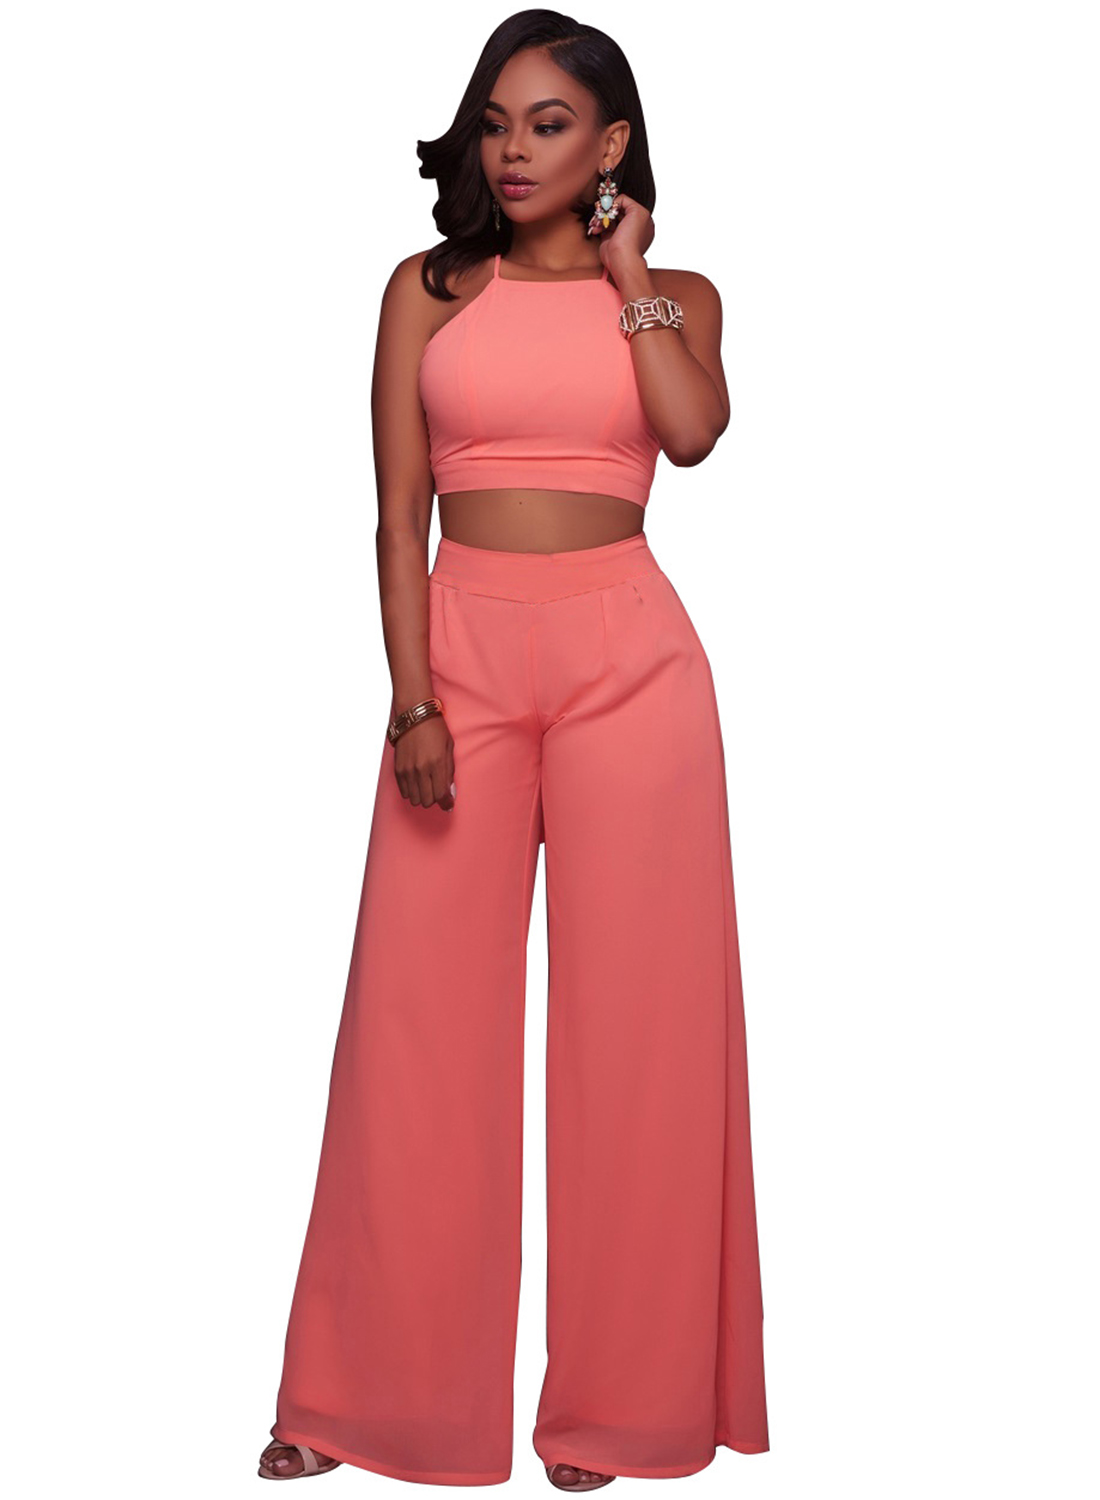 Women s Solid Color 2 Piece Crop Top Pants Set STYLESIMO.com. Loading zoom 82e7365ef5